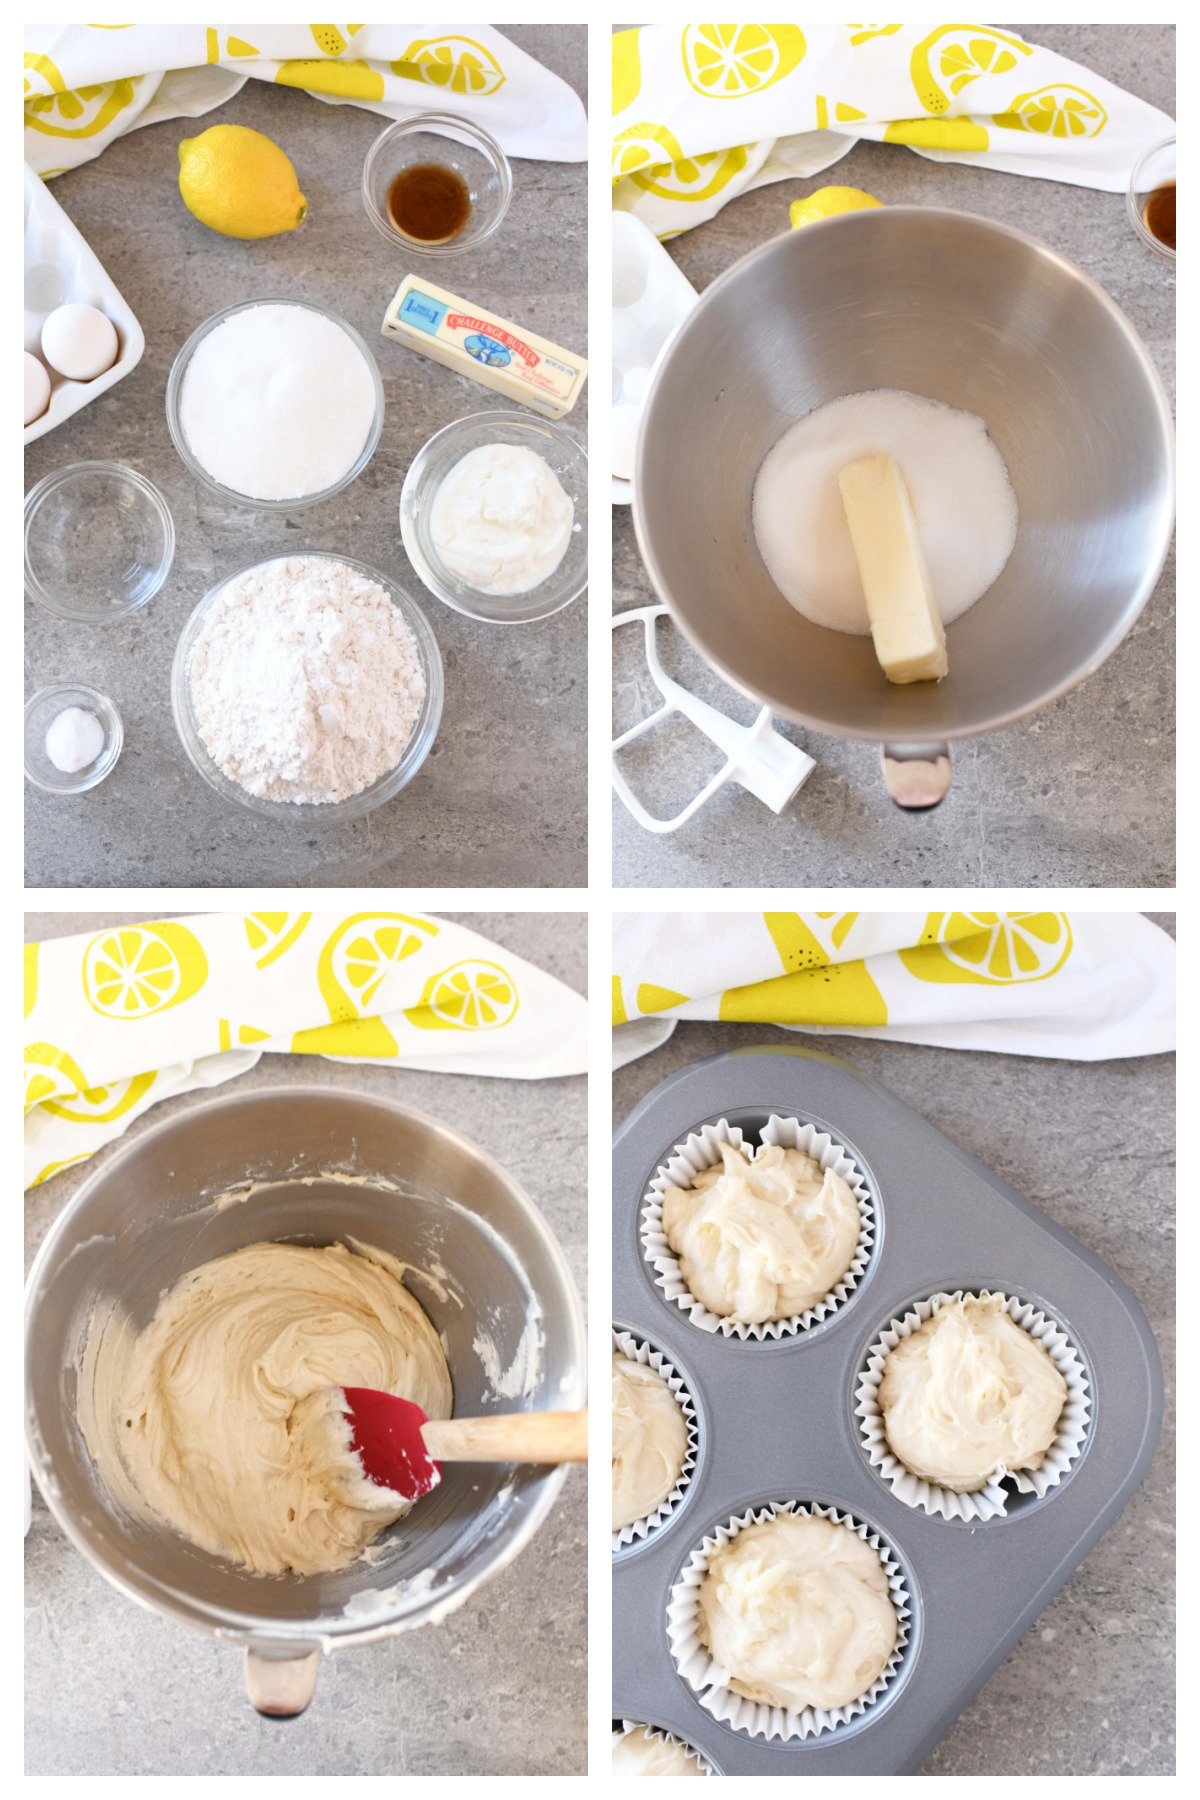 Making Iced Jumbo Lemon Muffins. A 4 image collage of lemon muffin ingredients and batter in a muffin pan.